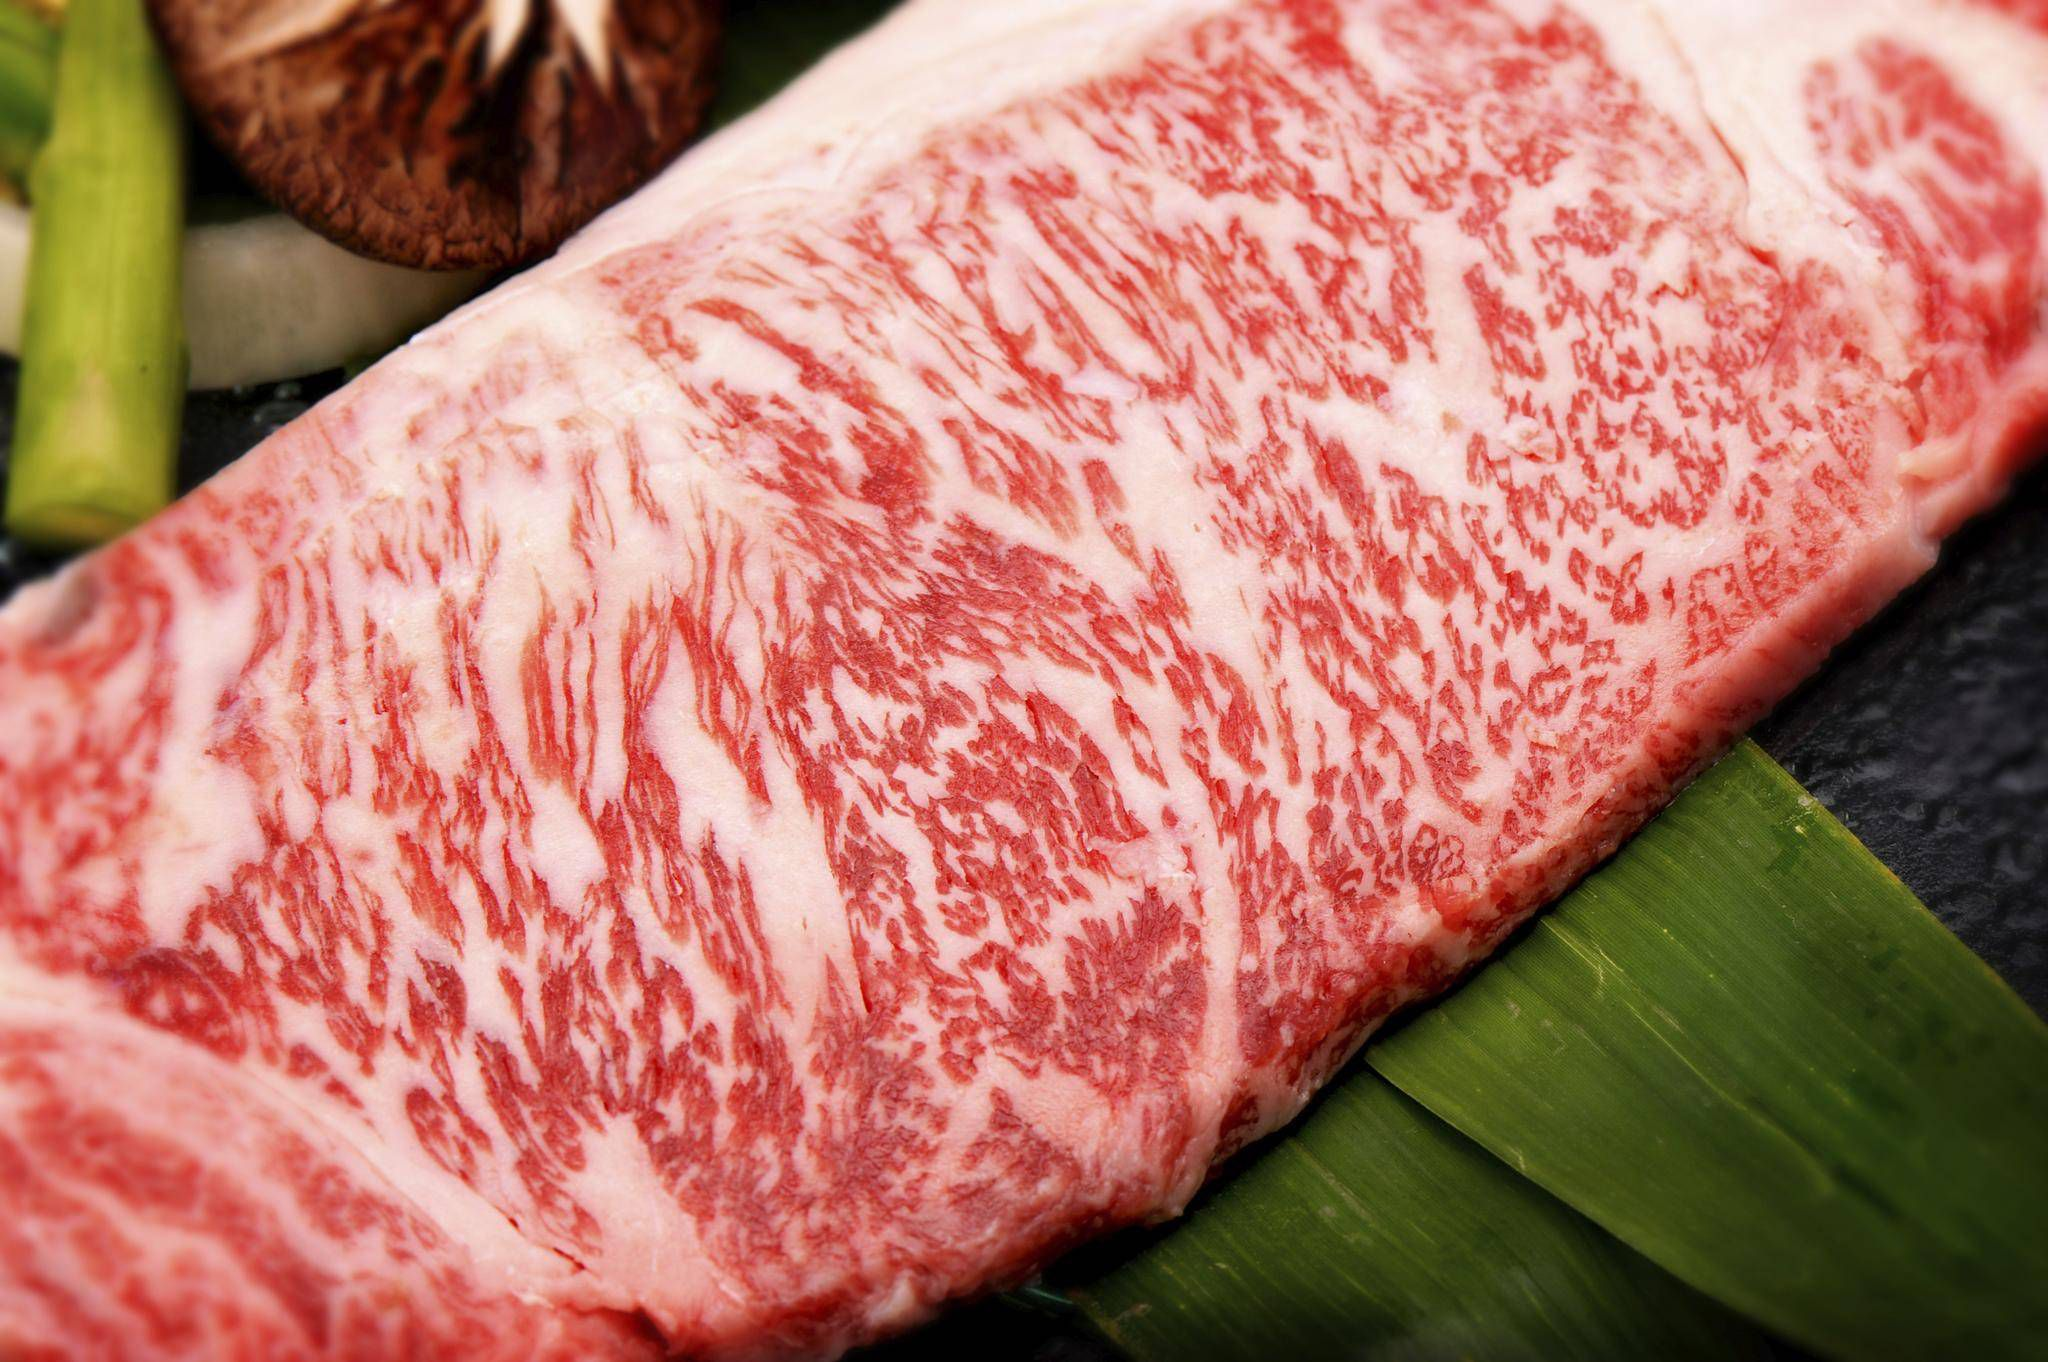 If you think you've had Kobe beef in Canada, you're wrong